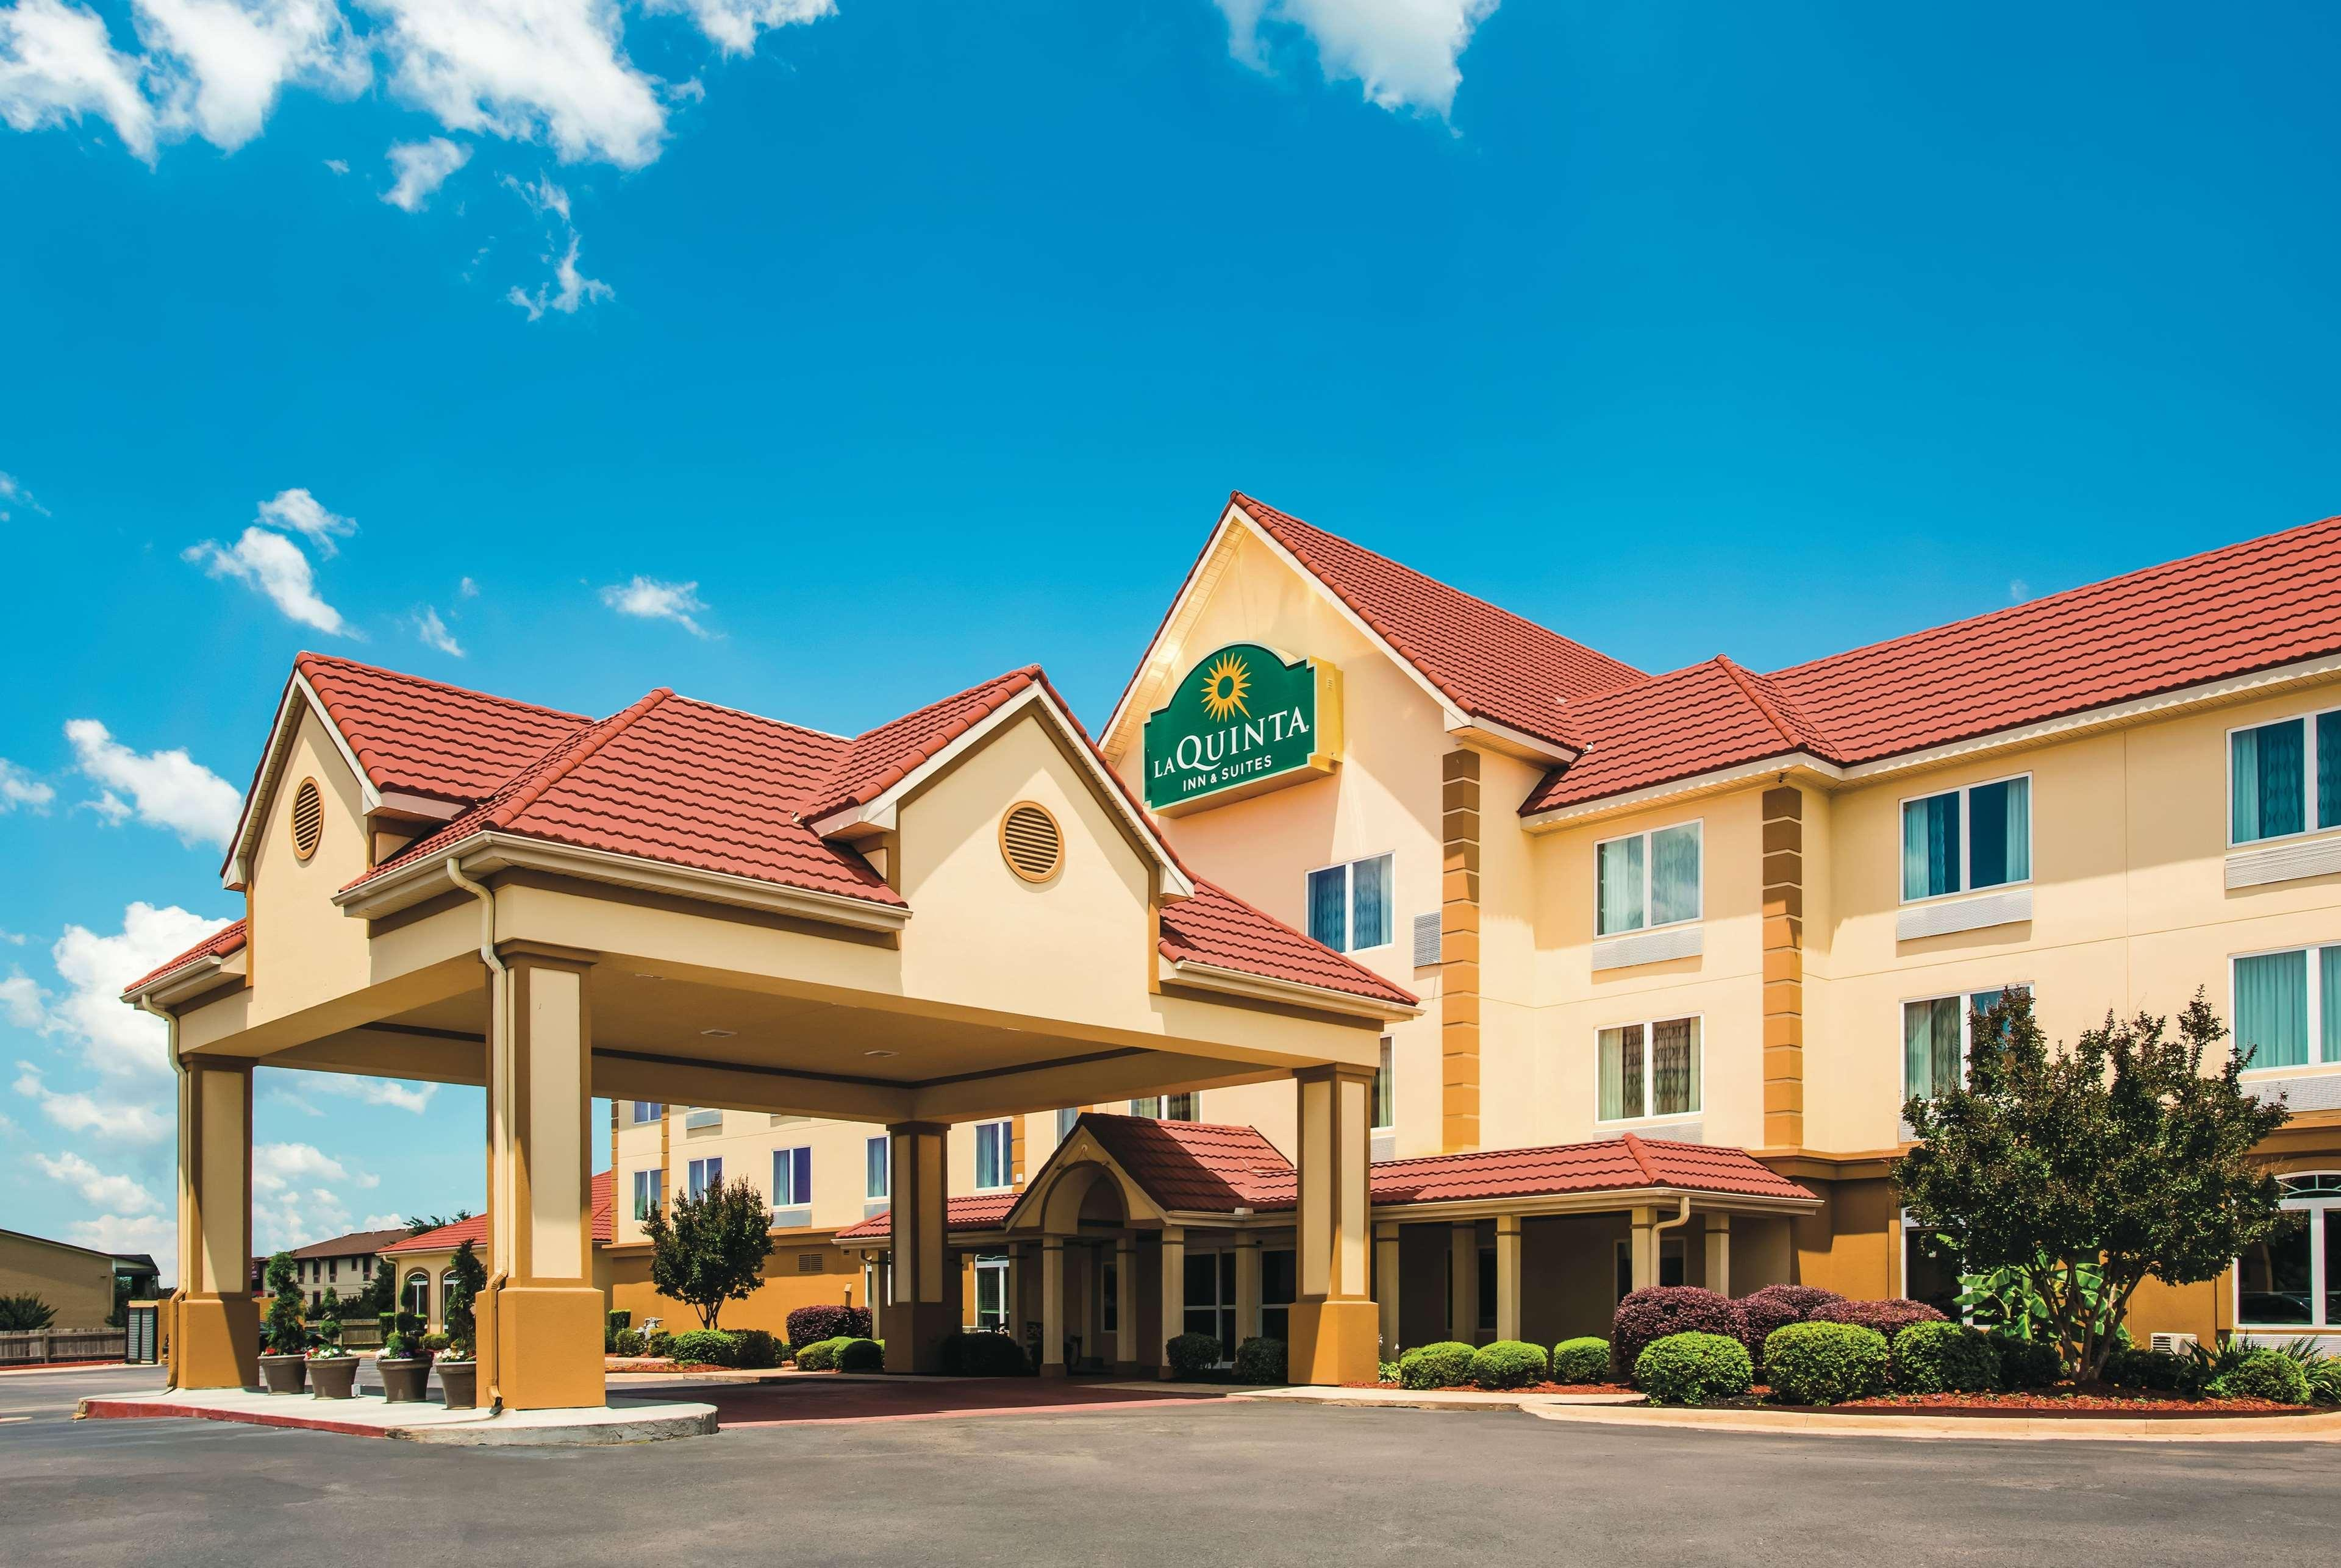 LA QUINTA INN SUITES BY WYNDHAM RUSSELLVILLE, Pope